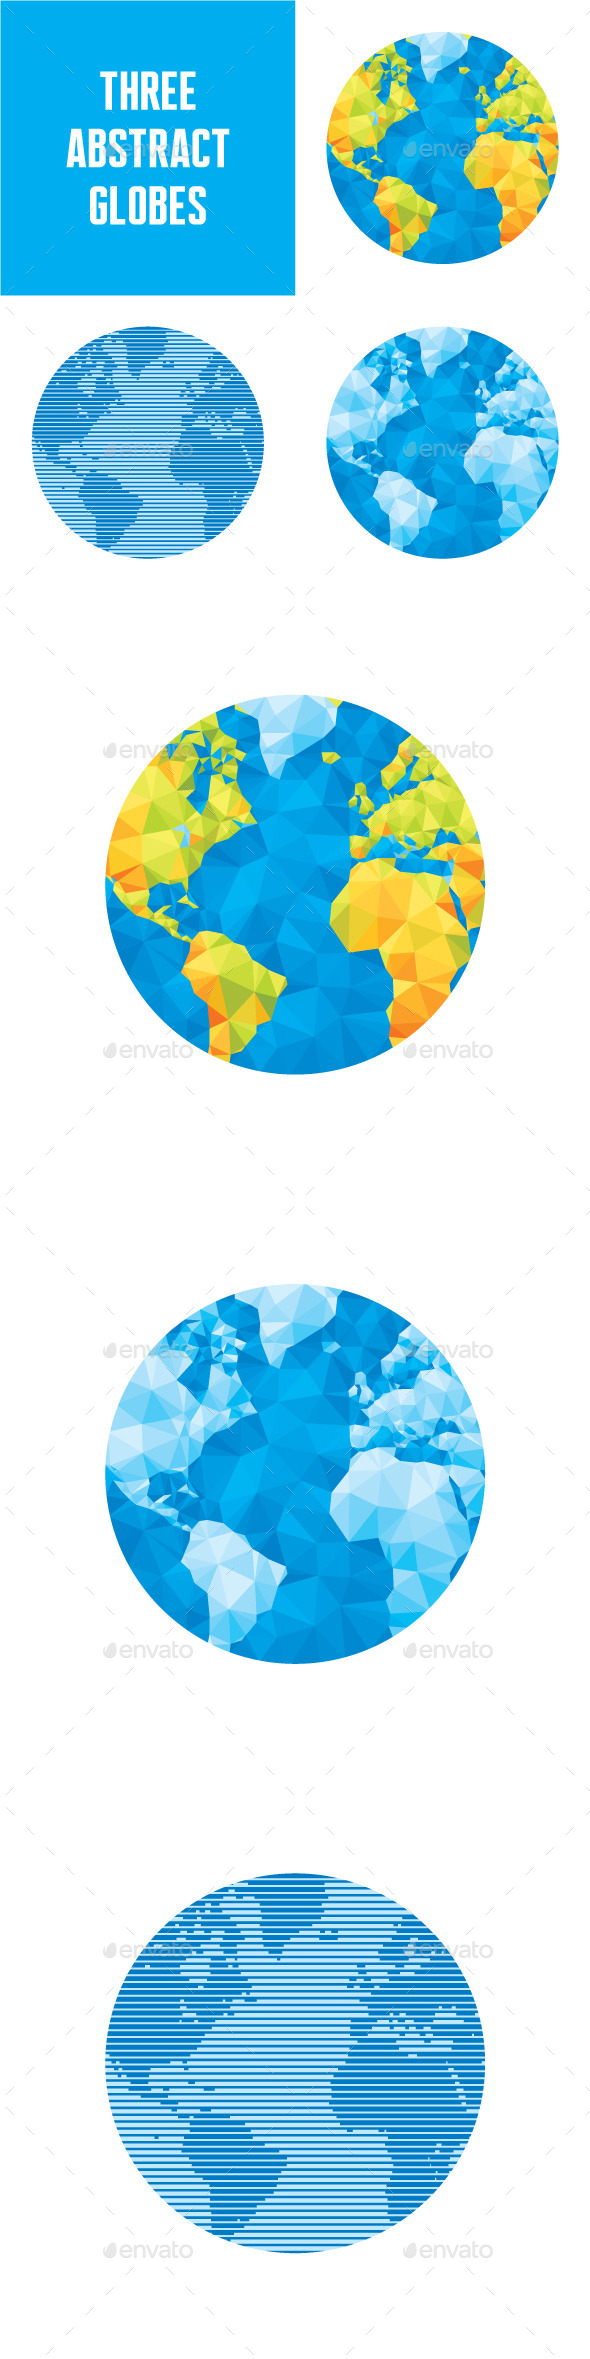 3 Abstract Vector Globes Illustrations